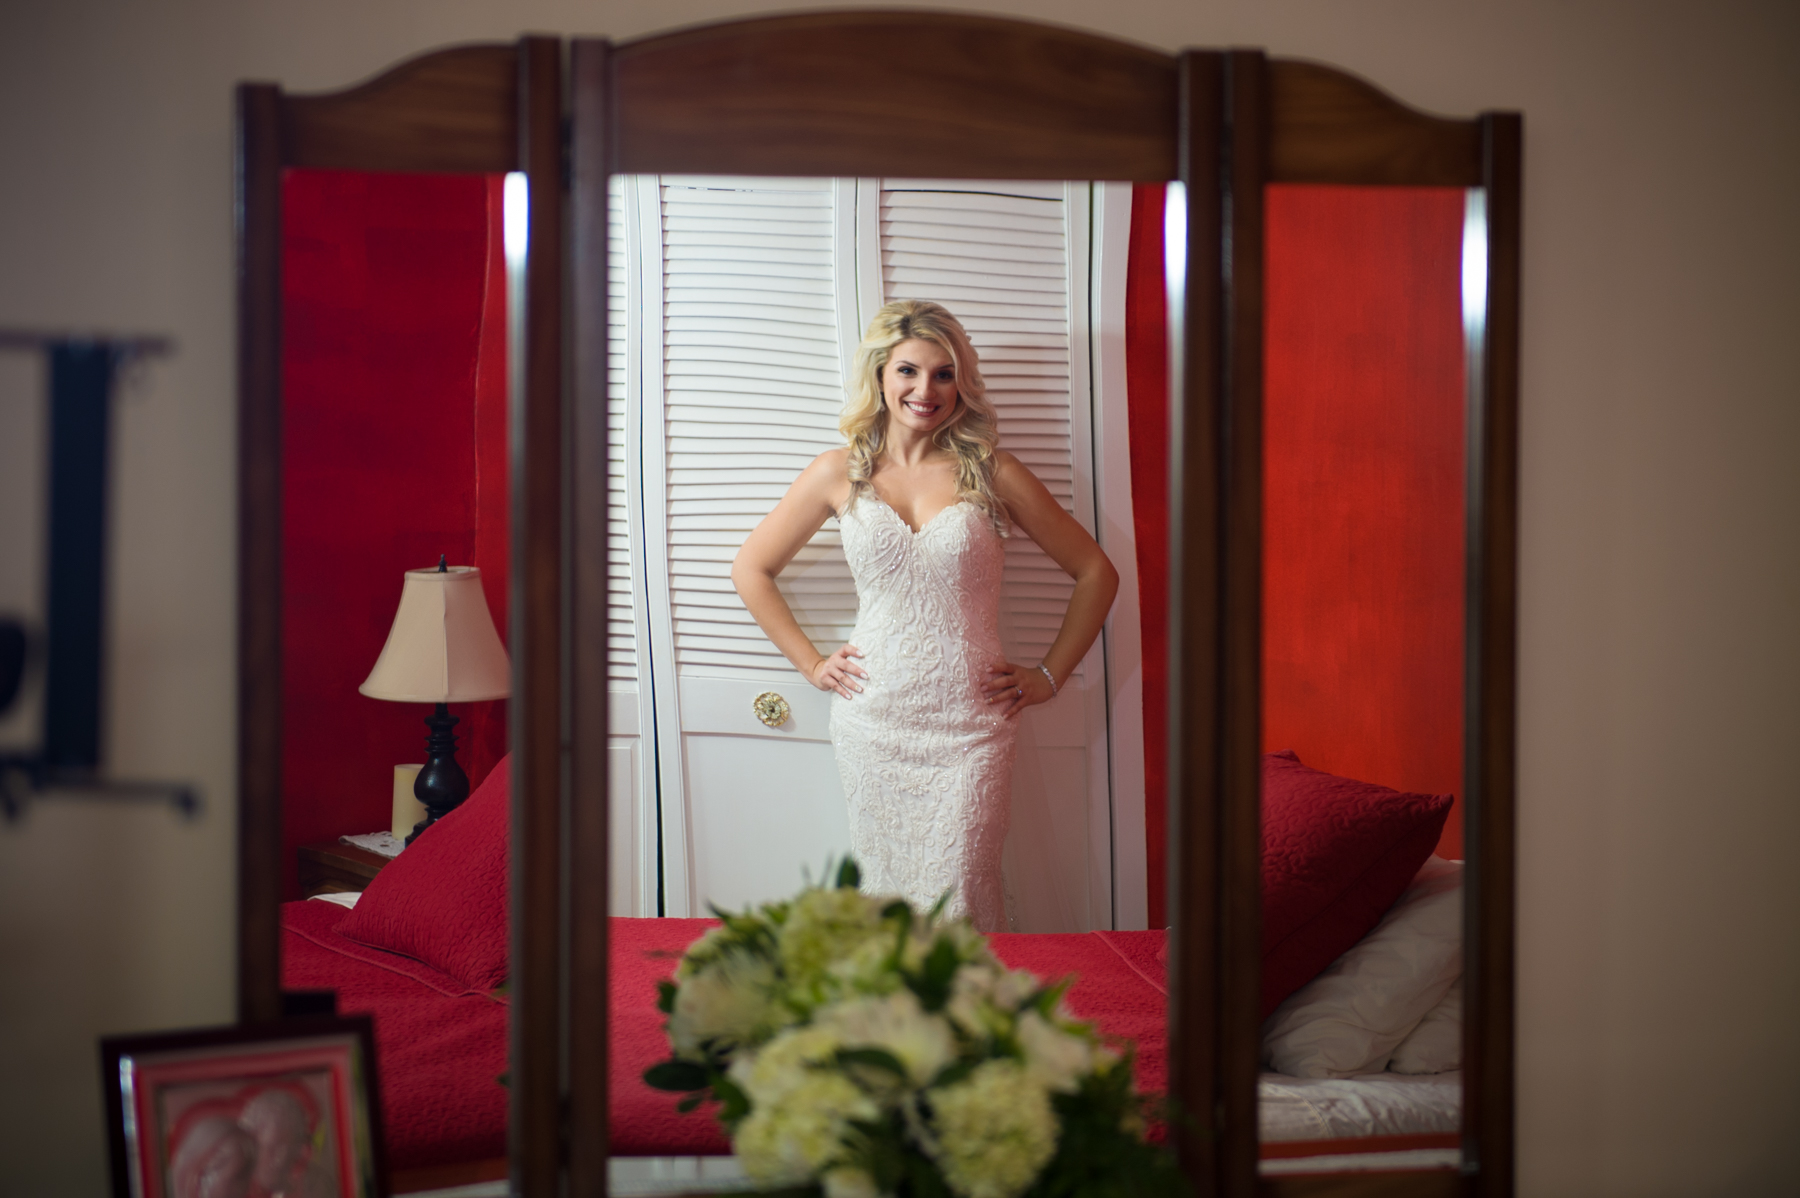 Blonde Portugues bride in mirror